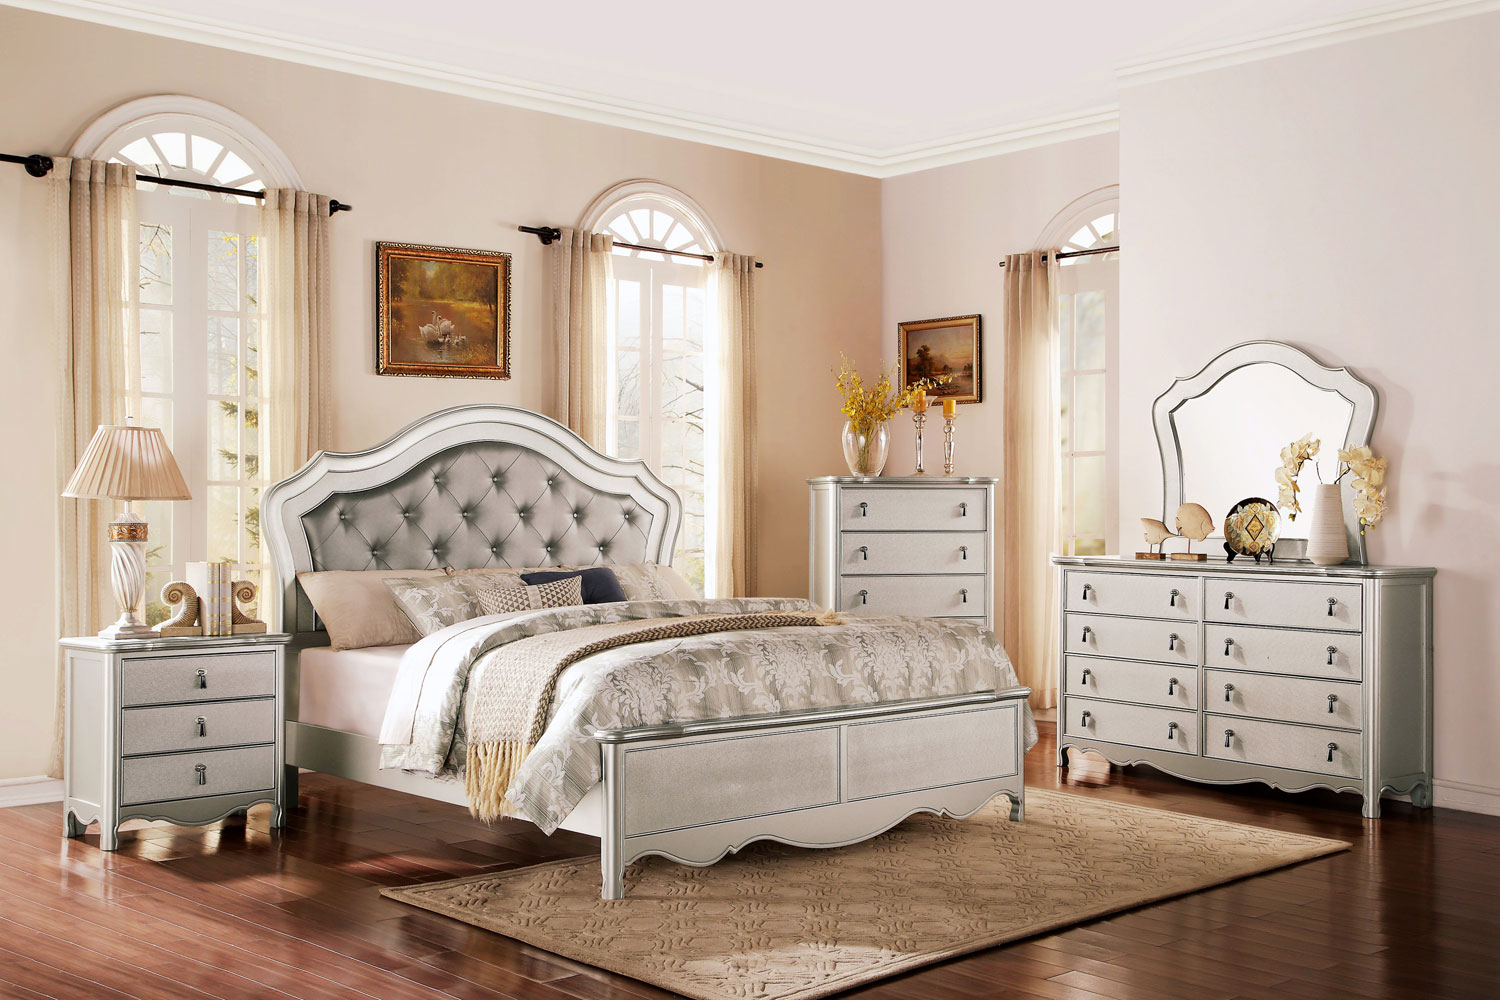 Best Upholstered Bedroom Set Design Ideas